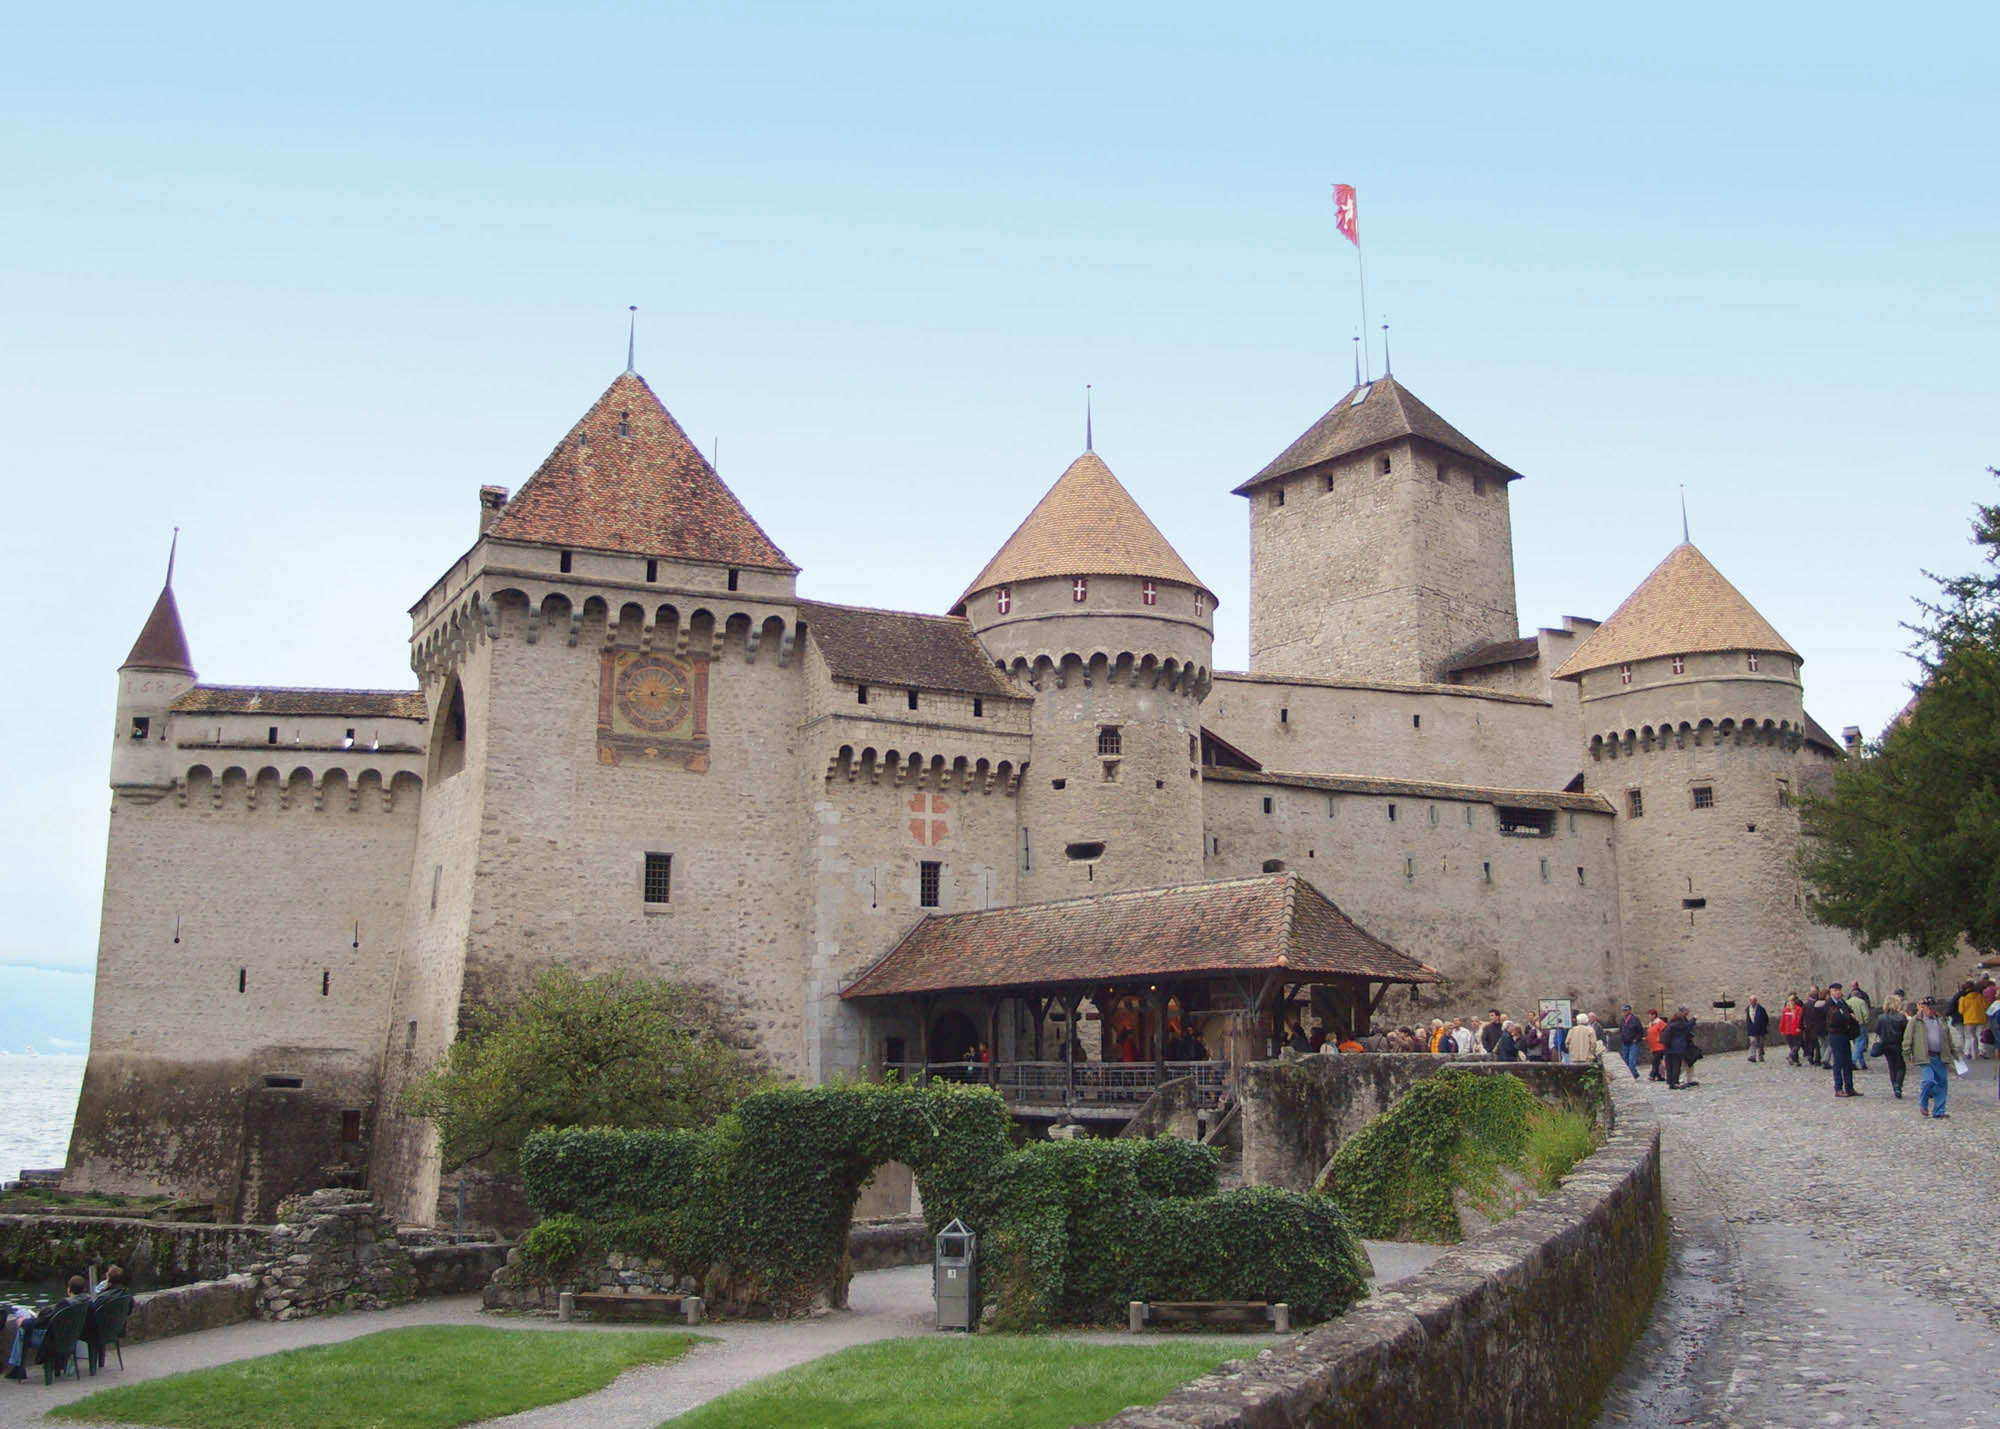 Chateau_de_Chillon_becauseprod